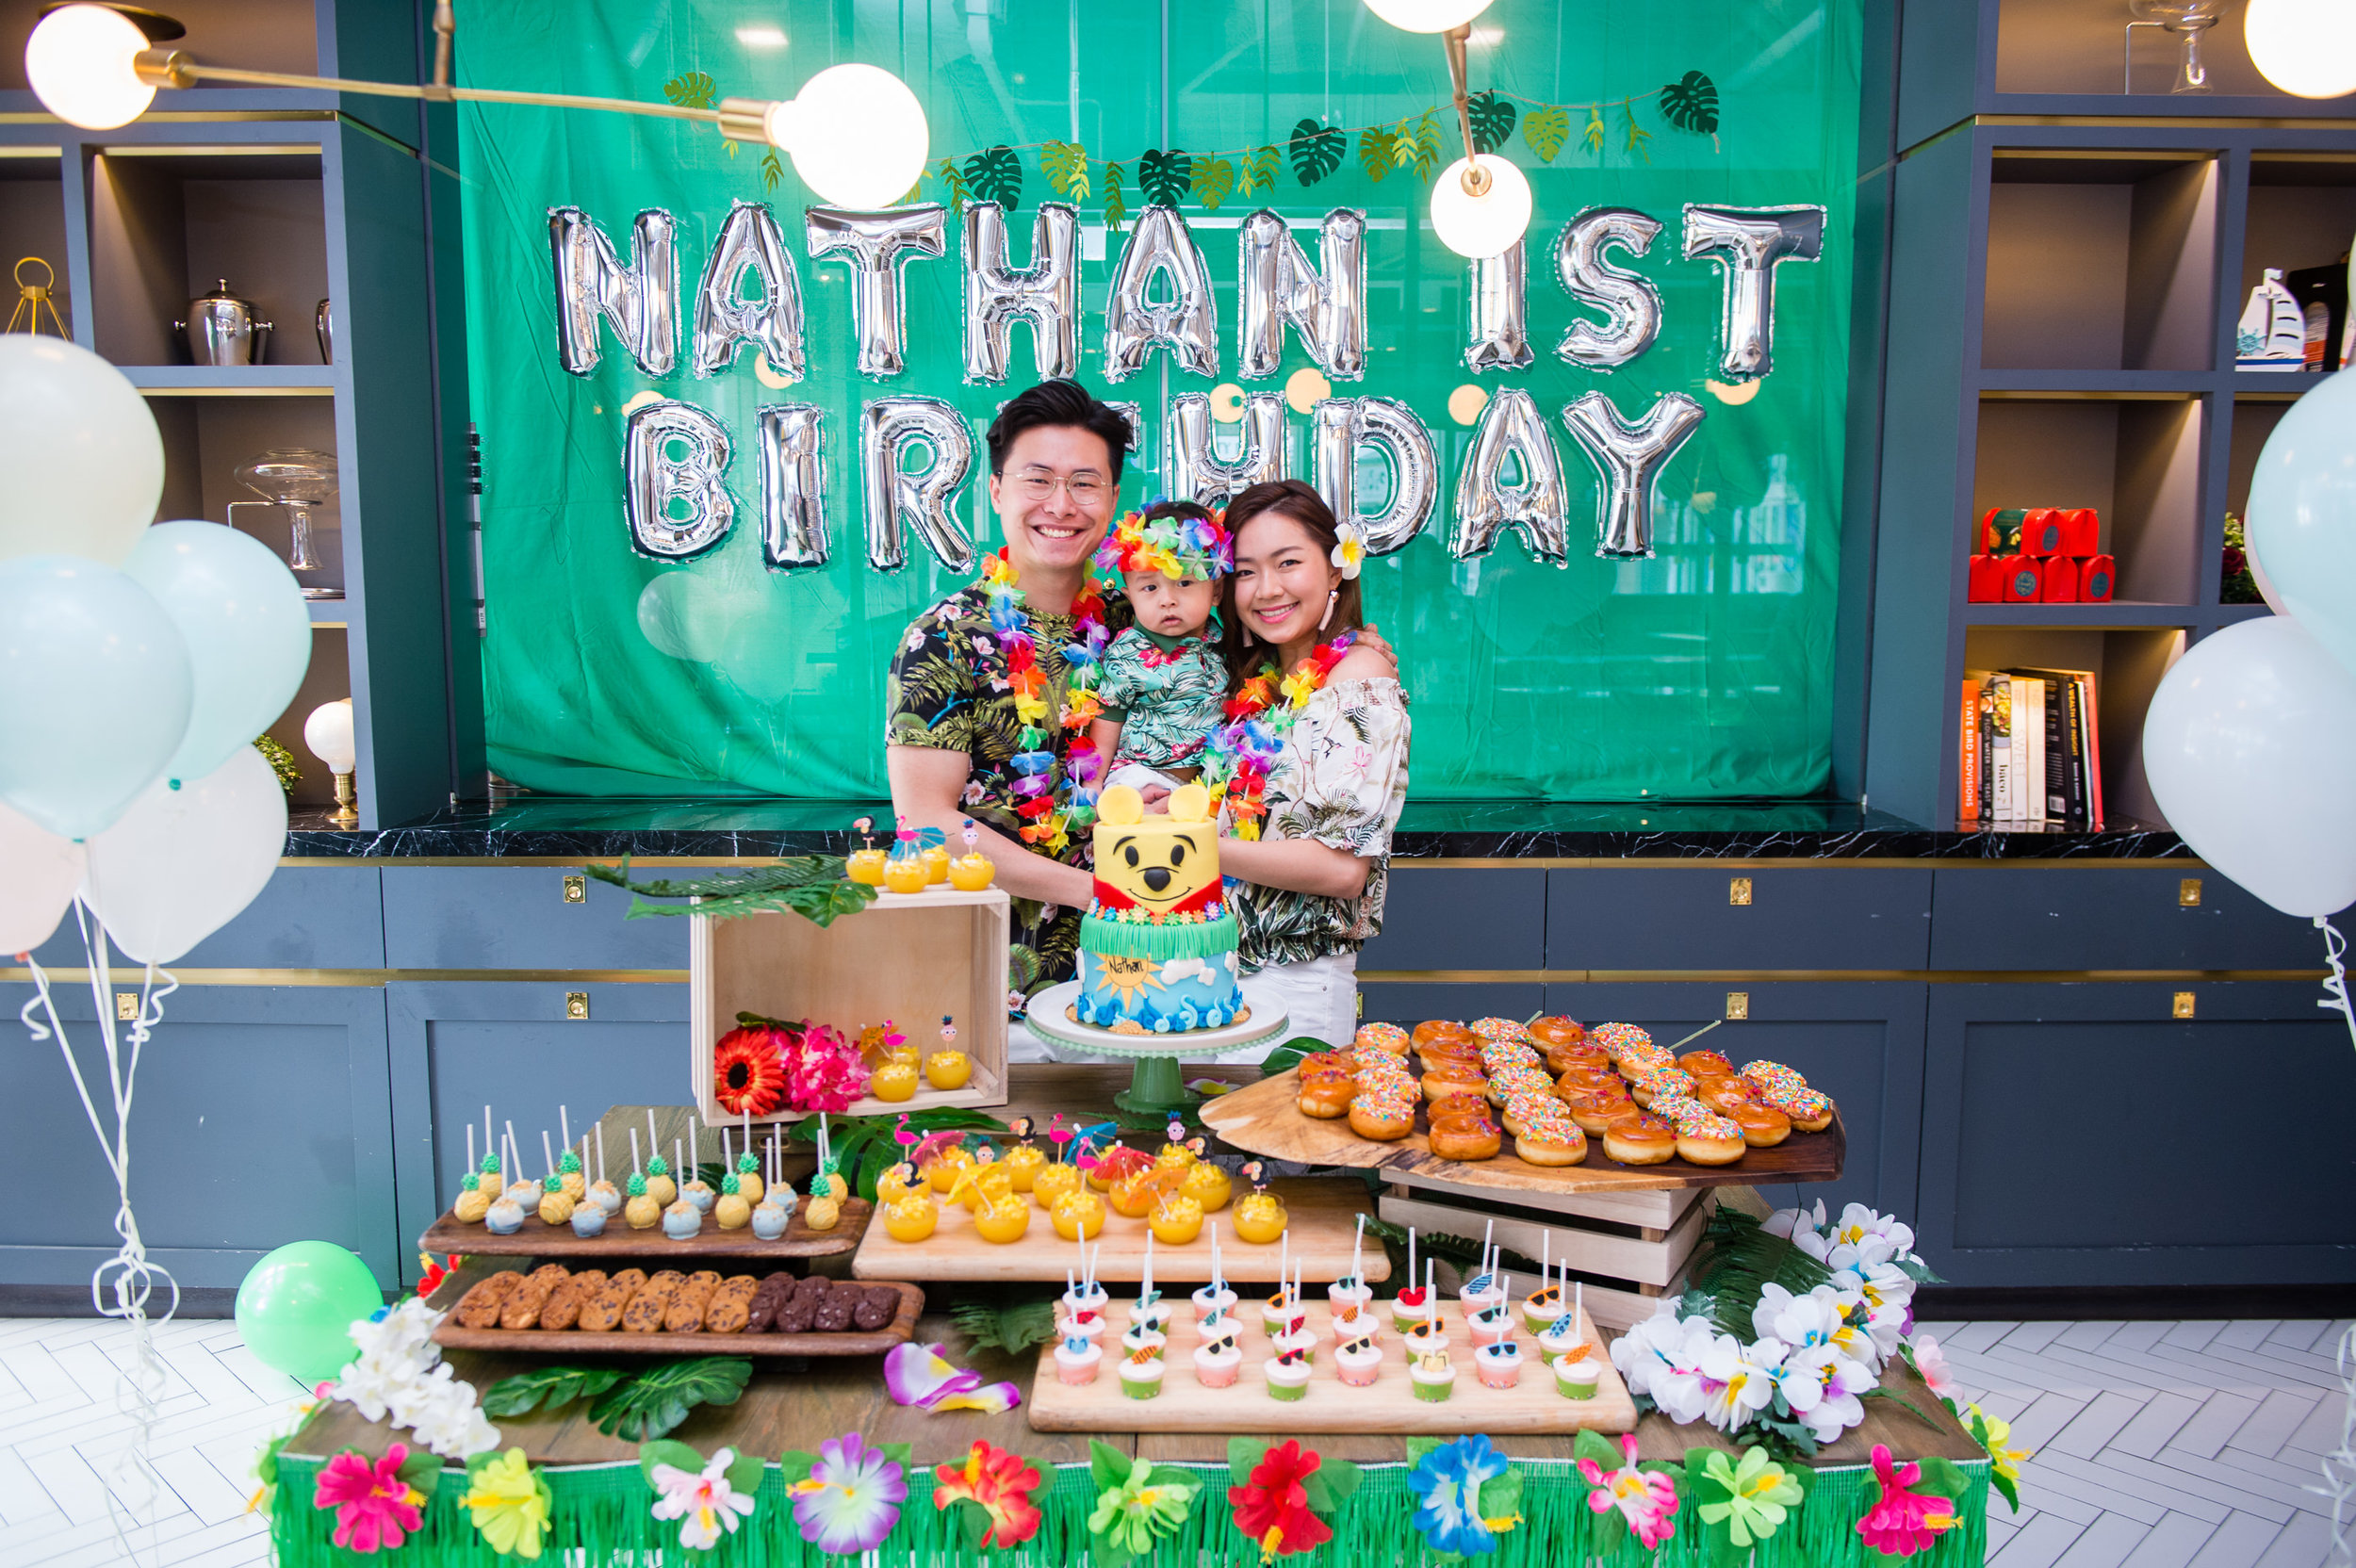 #sgpartyphotographer #sgeventphotographer #party2019 #birthday2019 #SGPhotographer #igsg #throwback #nikonphotographer #kidsparty #happybirthday #partyideas #catchmyparty #sgmum #sgfamily #sgbirthday #sgparty #sgkid #sgbabies #sgparties #sgfamily